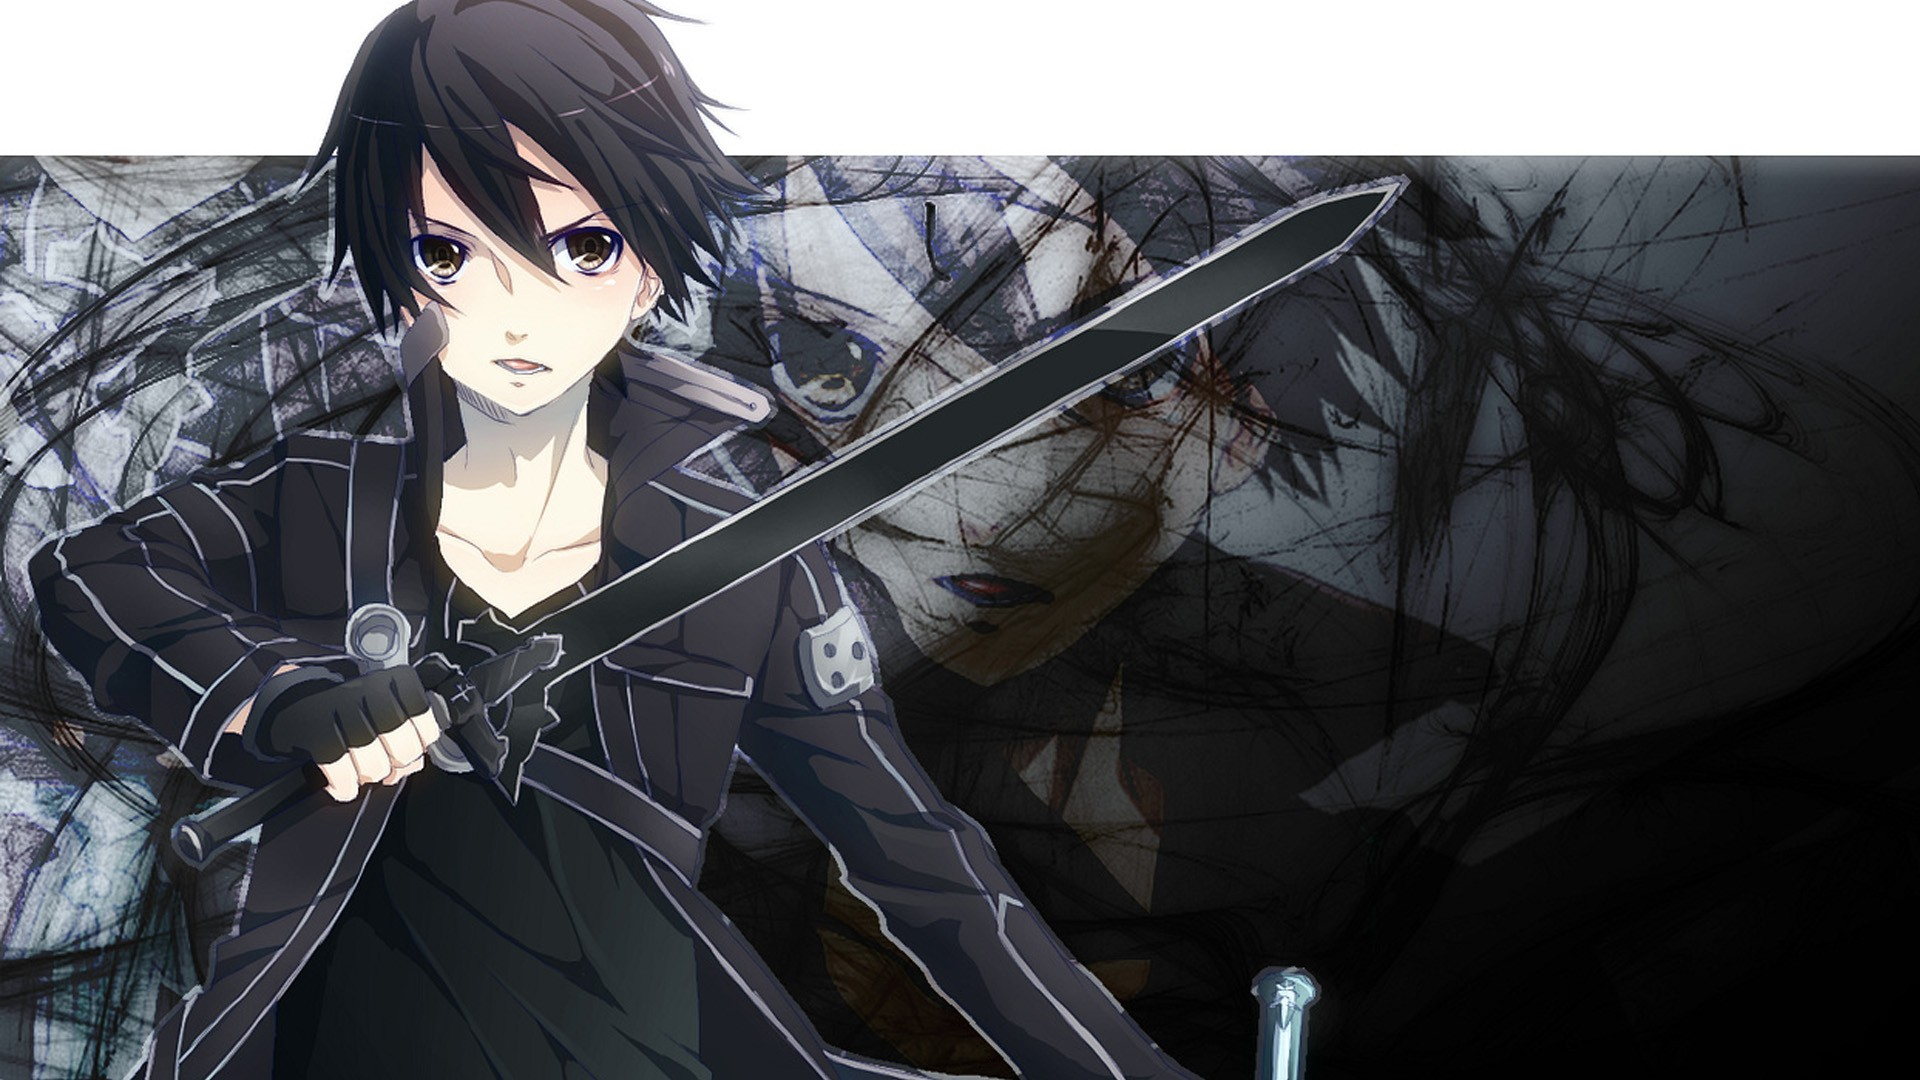 Sword Art Online Background: Sword Art Online Wallpapers High Quality